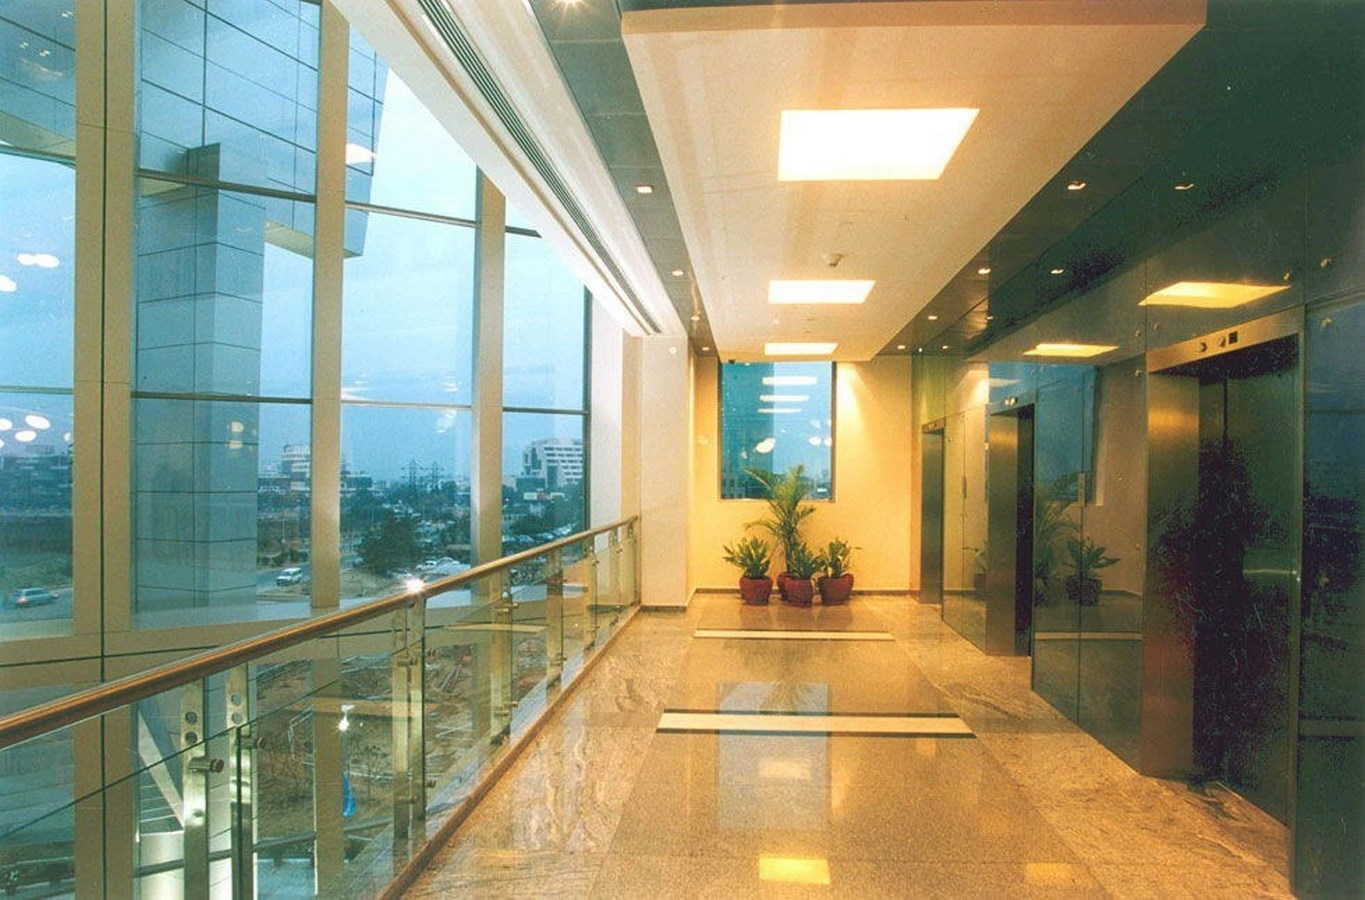 20 Iconic Projects By Hafeez Contractor - DLF Ericsson2